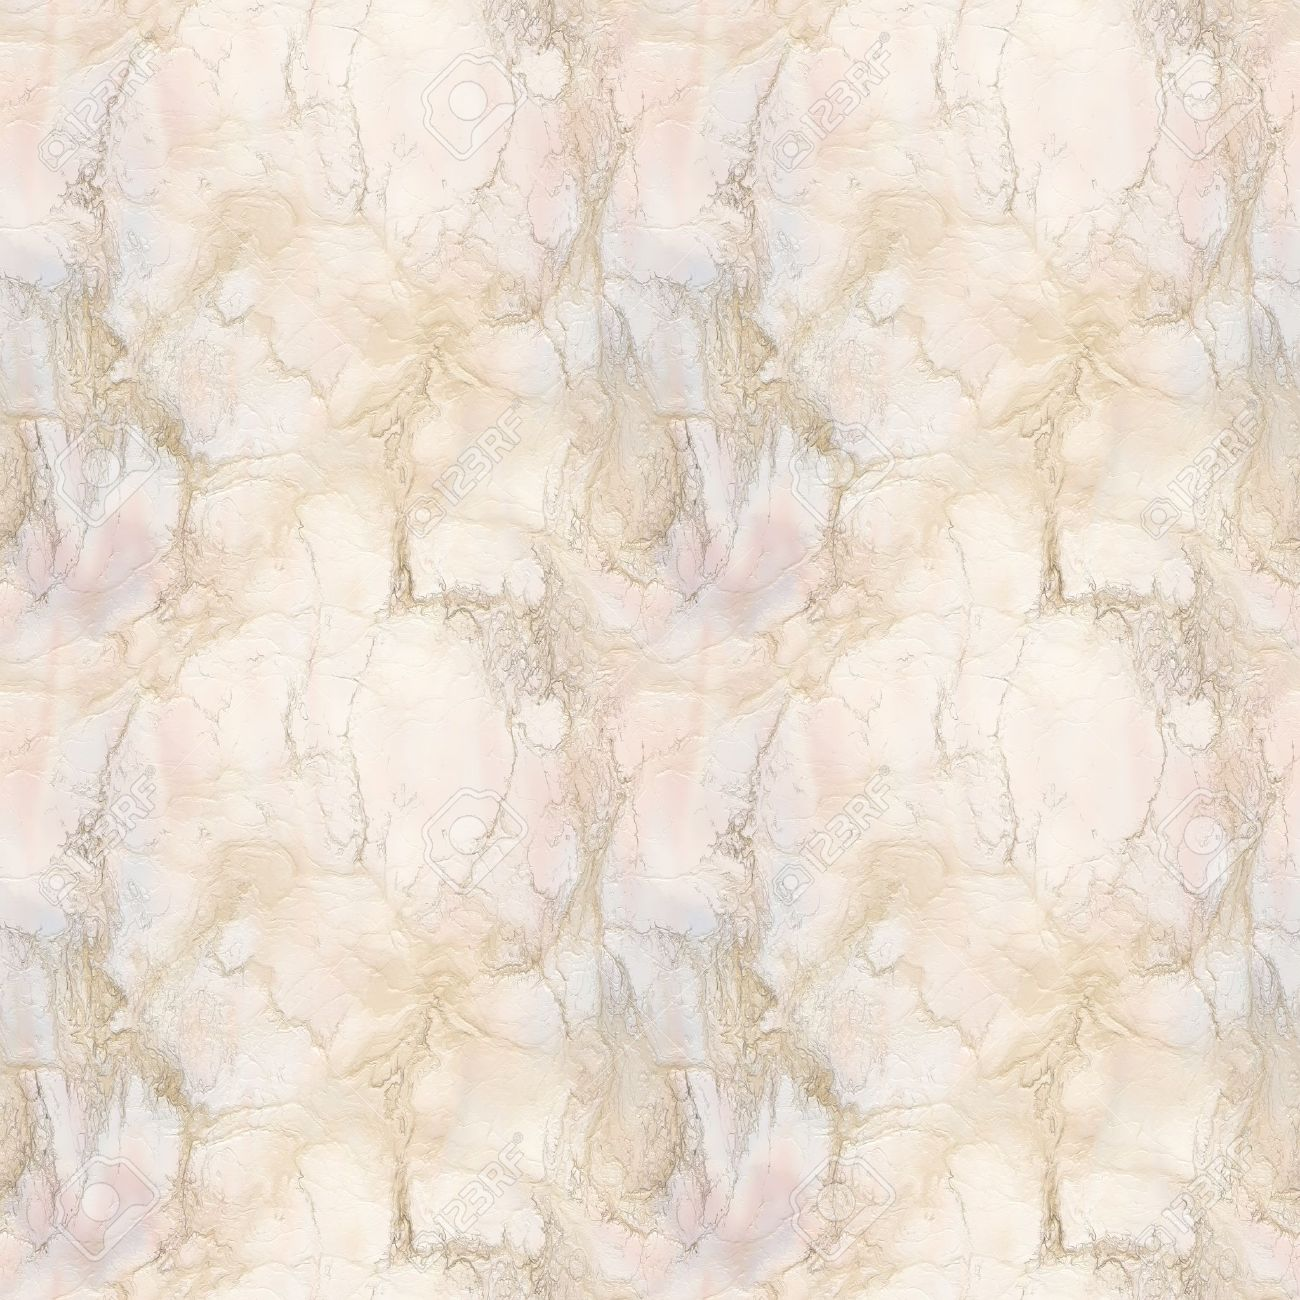 Wonderful Wallpaper Marble Peach - 13264676-pink-and-peach-marble-seamless-pattern-illustration  Pic_431142.jpg